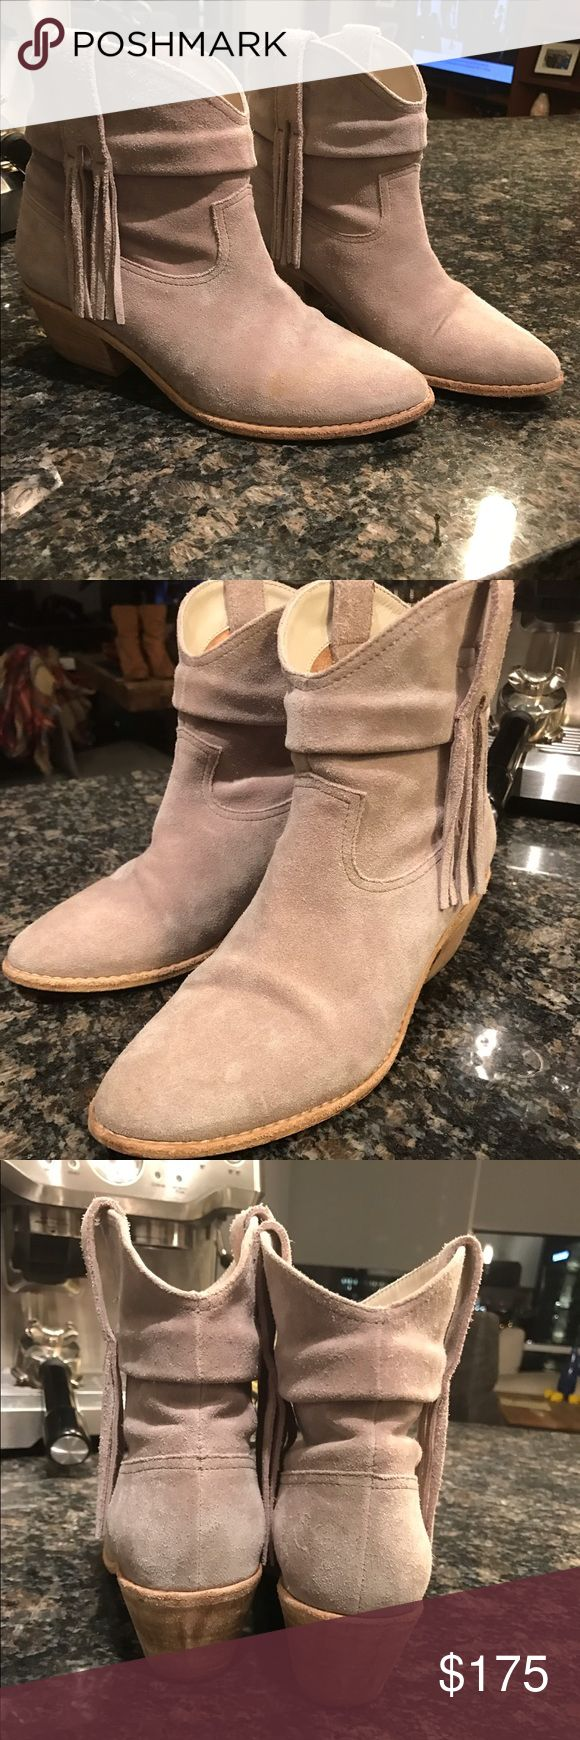 """Joie Keaton suede fringe booties Grey suede joie fringe booties, size 8.5, 2"""" stacked heel and leather sole, very minimal wear Joie Shoes Ankle Boots & Booties"""